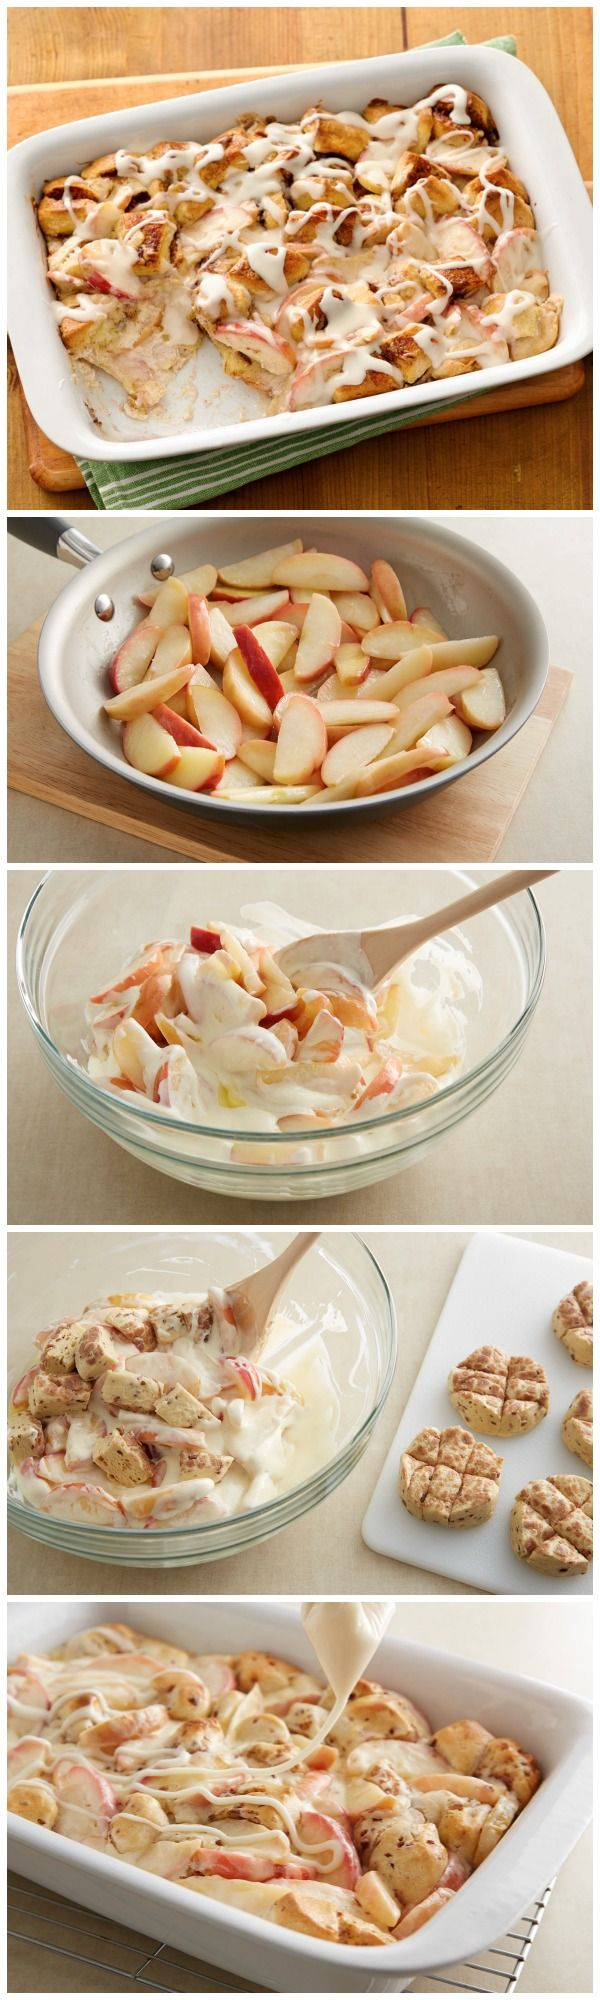 Take it easy in the morning with the help of Pillsbury cinnamon rolls and sweet, crunchy apples!